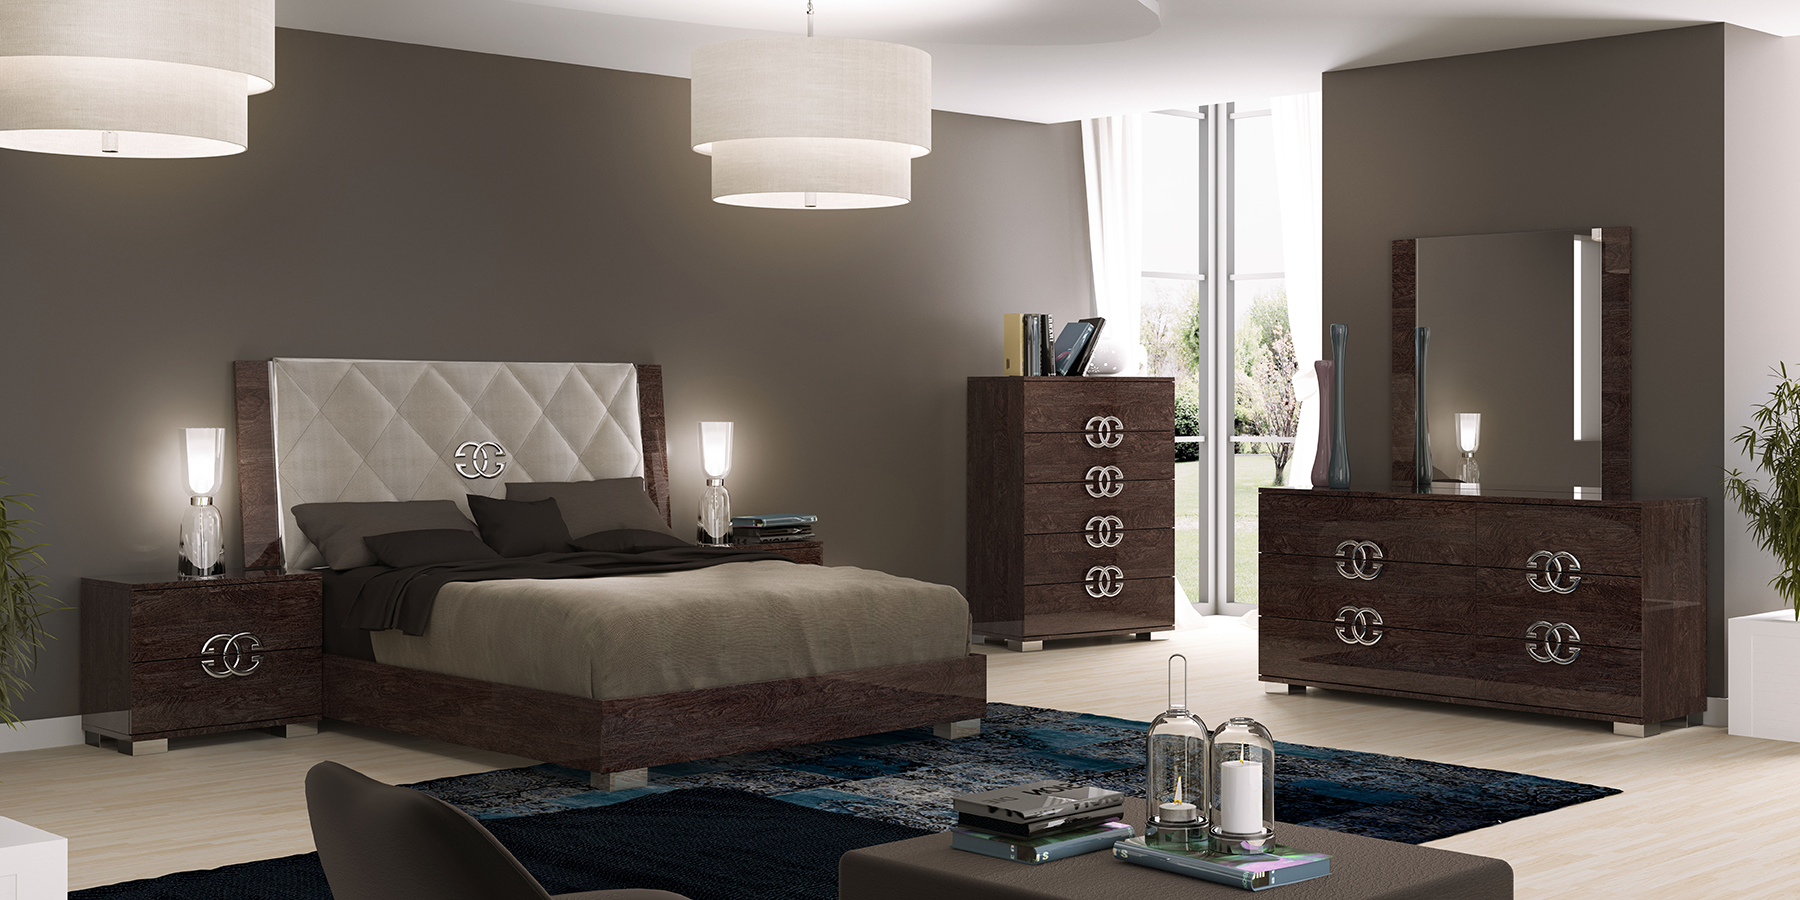 bedroom Furniture Exporters